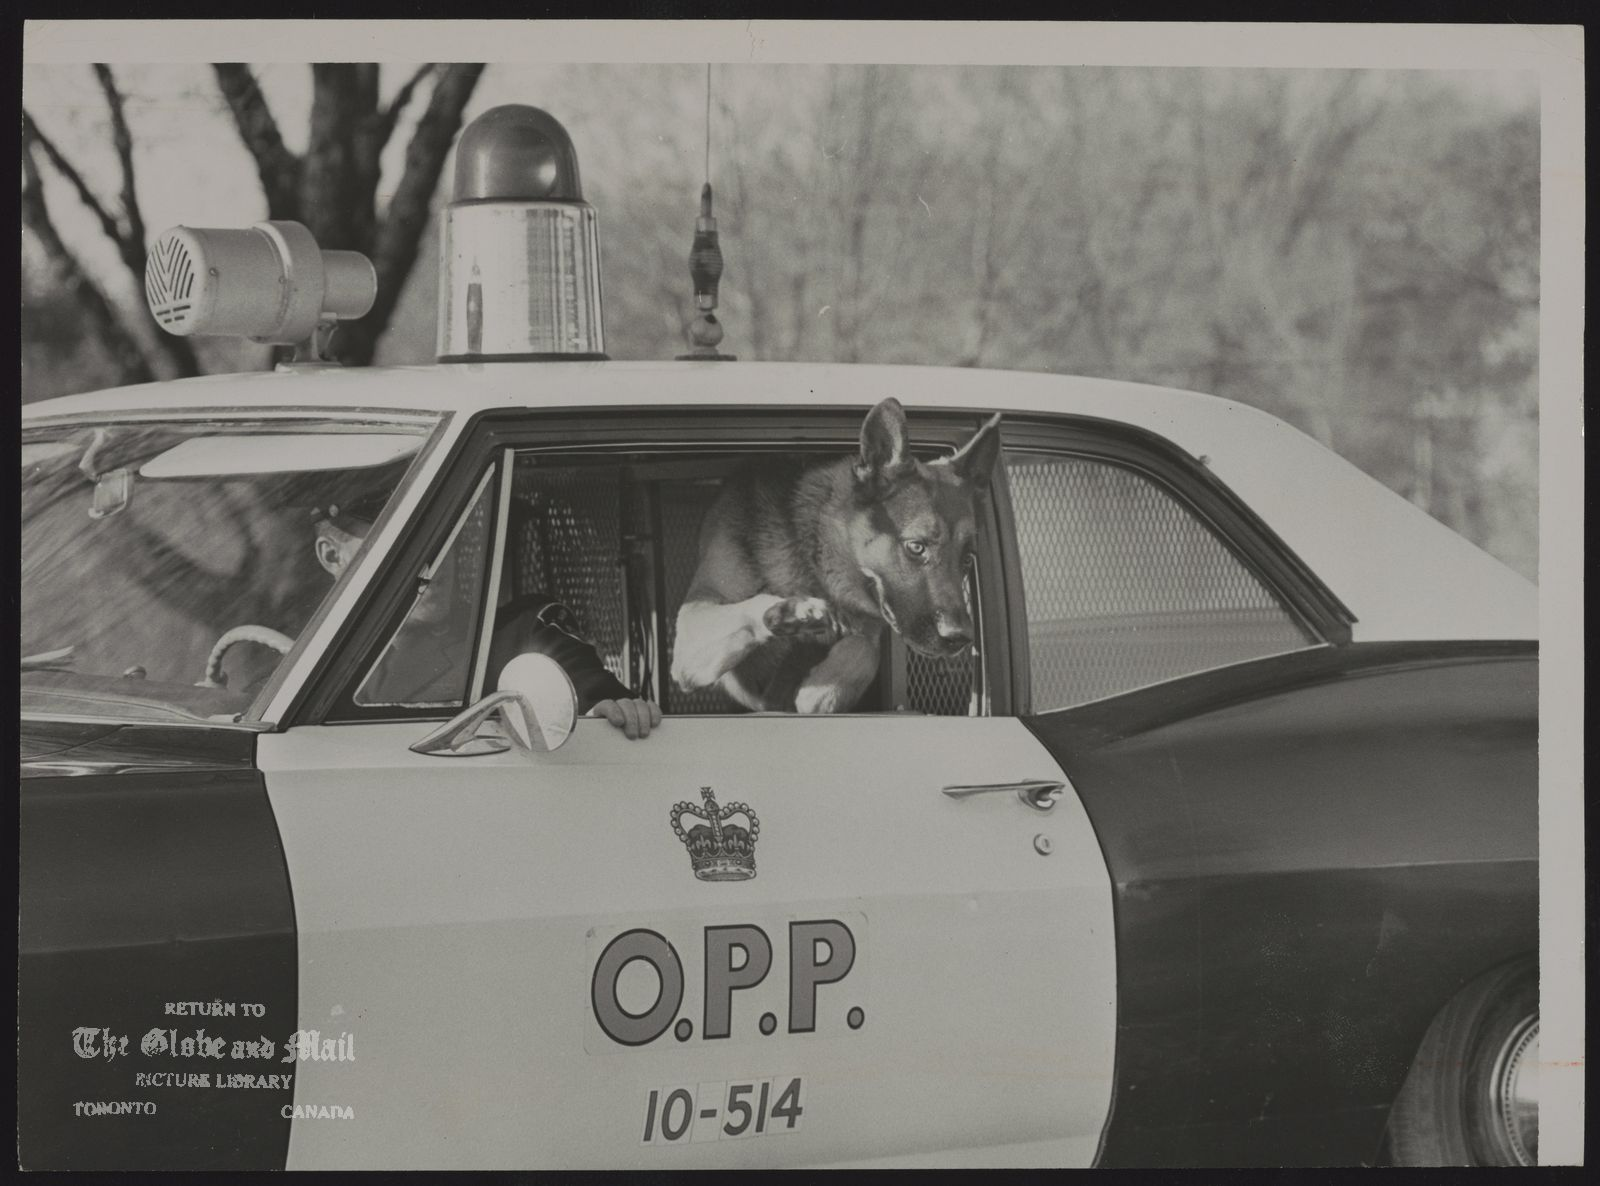 DOGS IN POLICE WORK MOUNT FOREST--The 97 pound German shepherd, its teeth bared, leaped through the open window of the provincial police cruiser and bounded after the man in the field.